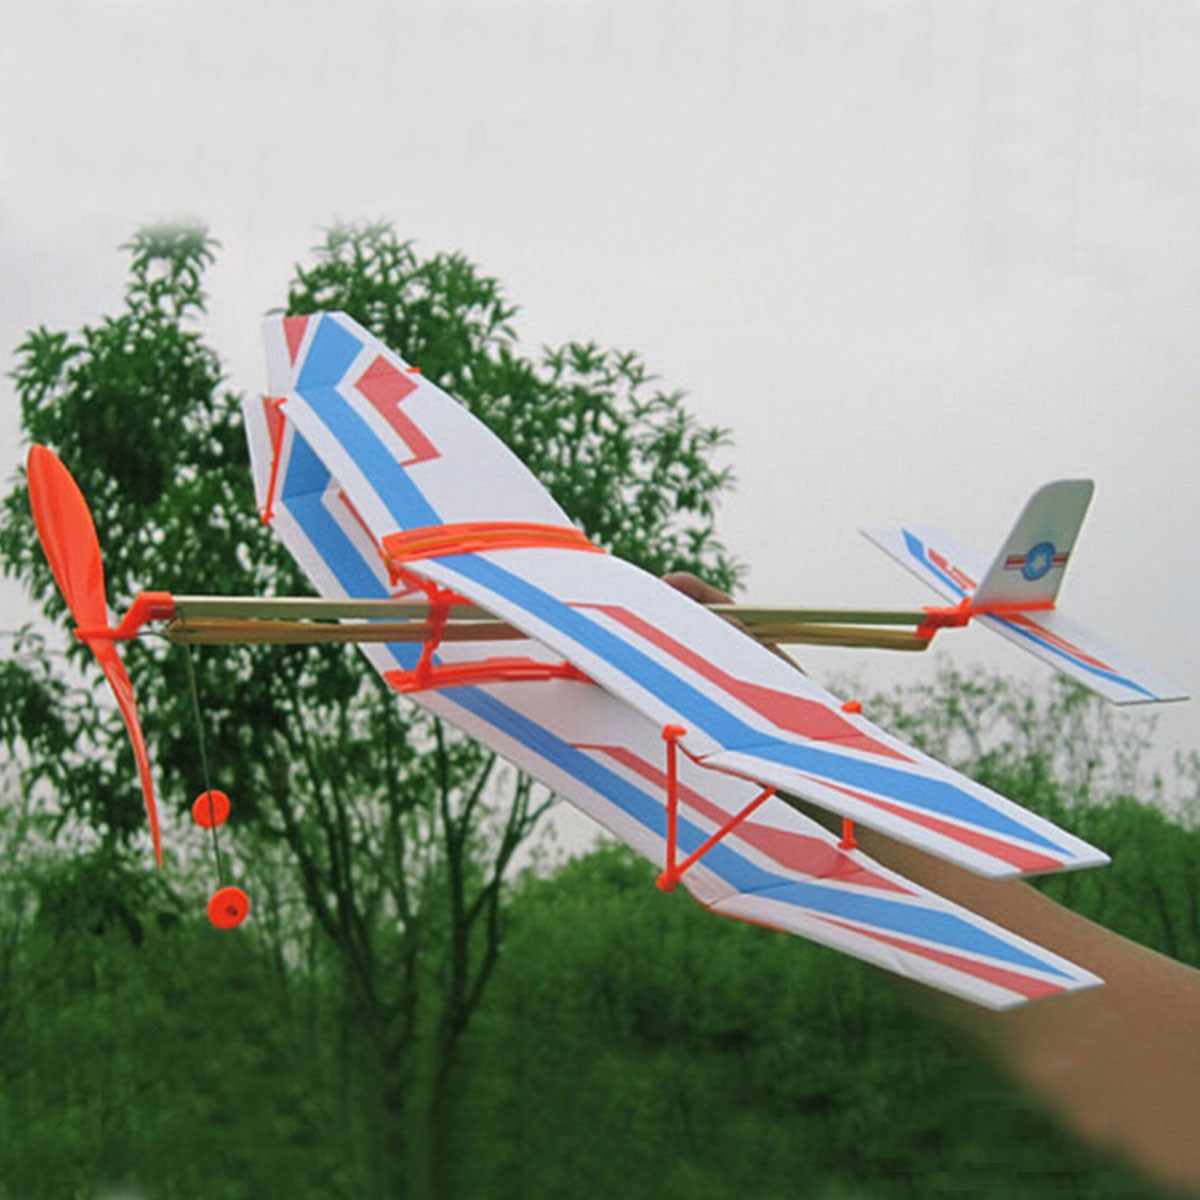 NEW Educational DIY Assembly Airplane Aircraft Launched Powered By Rubber Kids Model Building Kits<br><br>Aliexpress